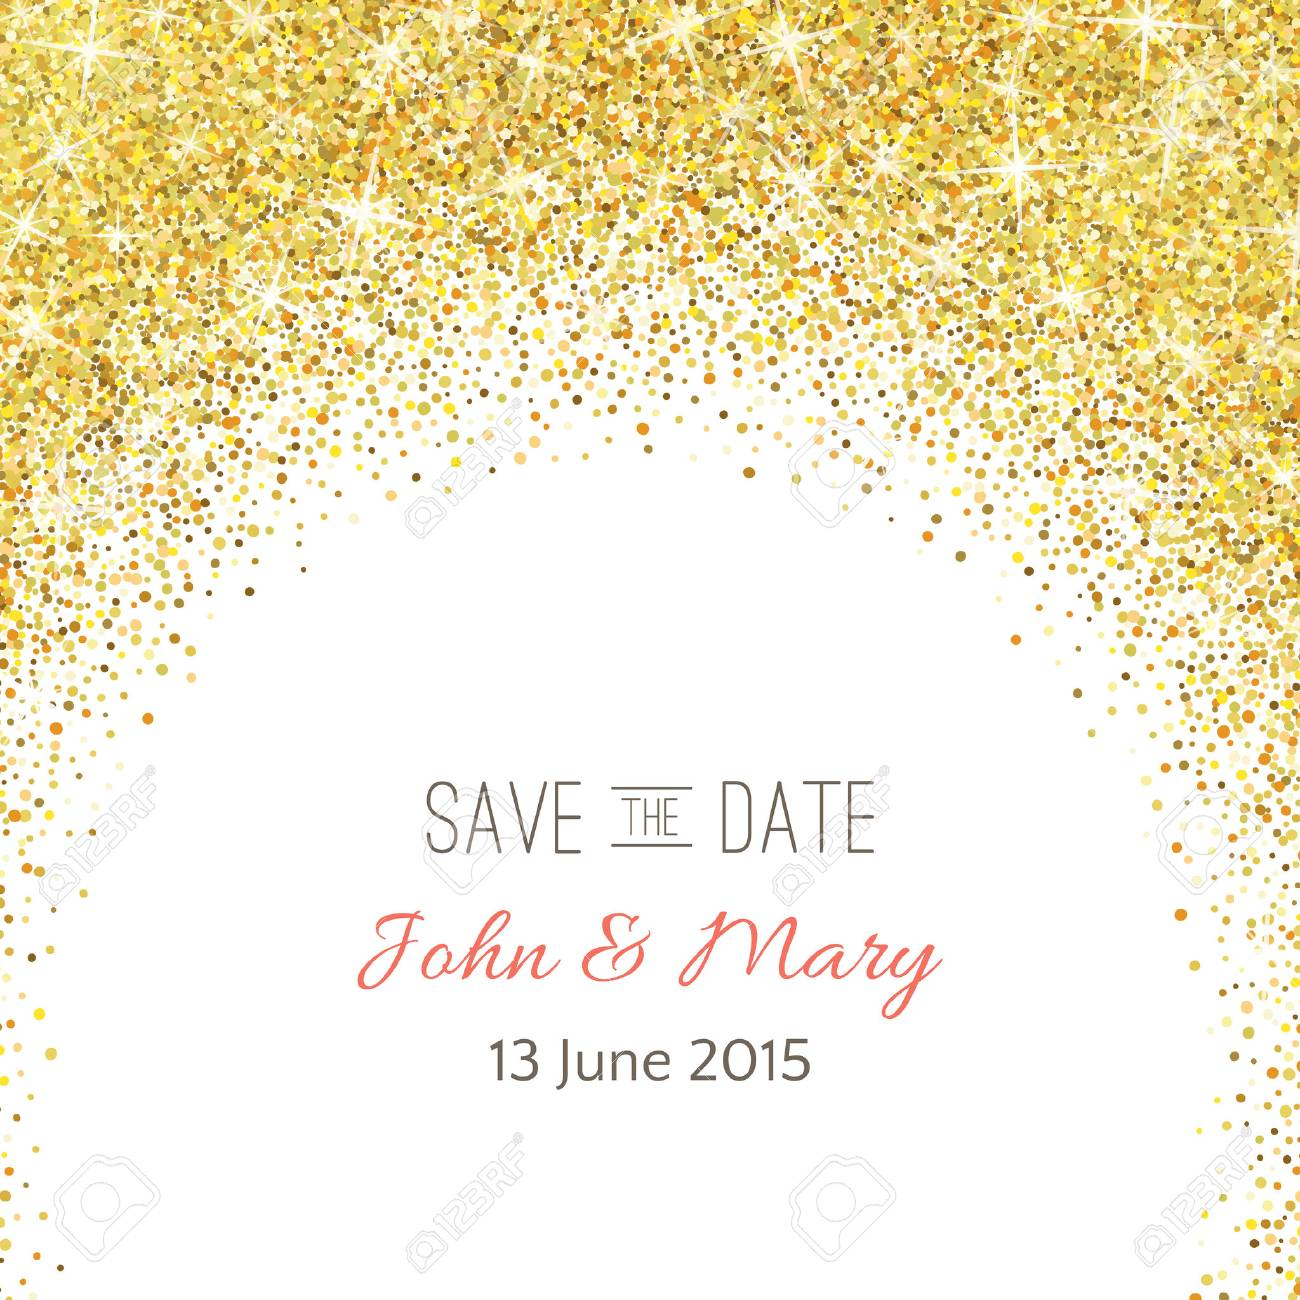 Perfect Wedding Template With Golden Confetti Theme. Royalty Free ...